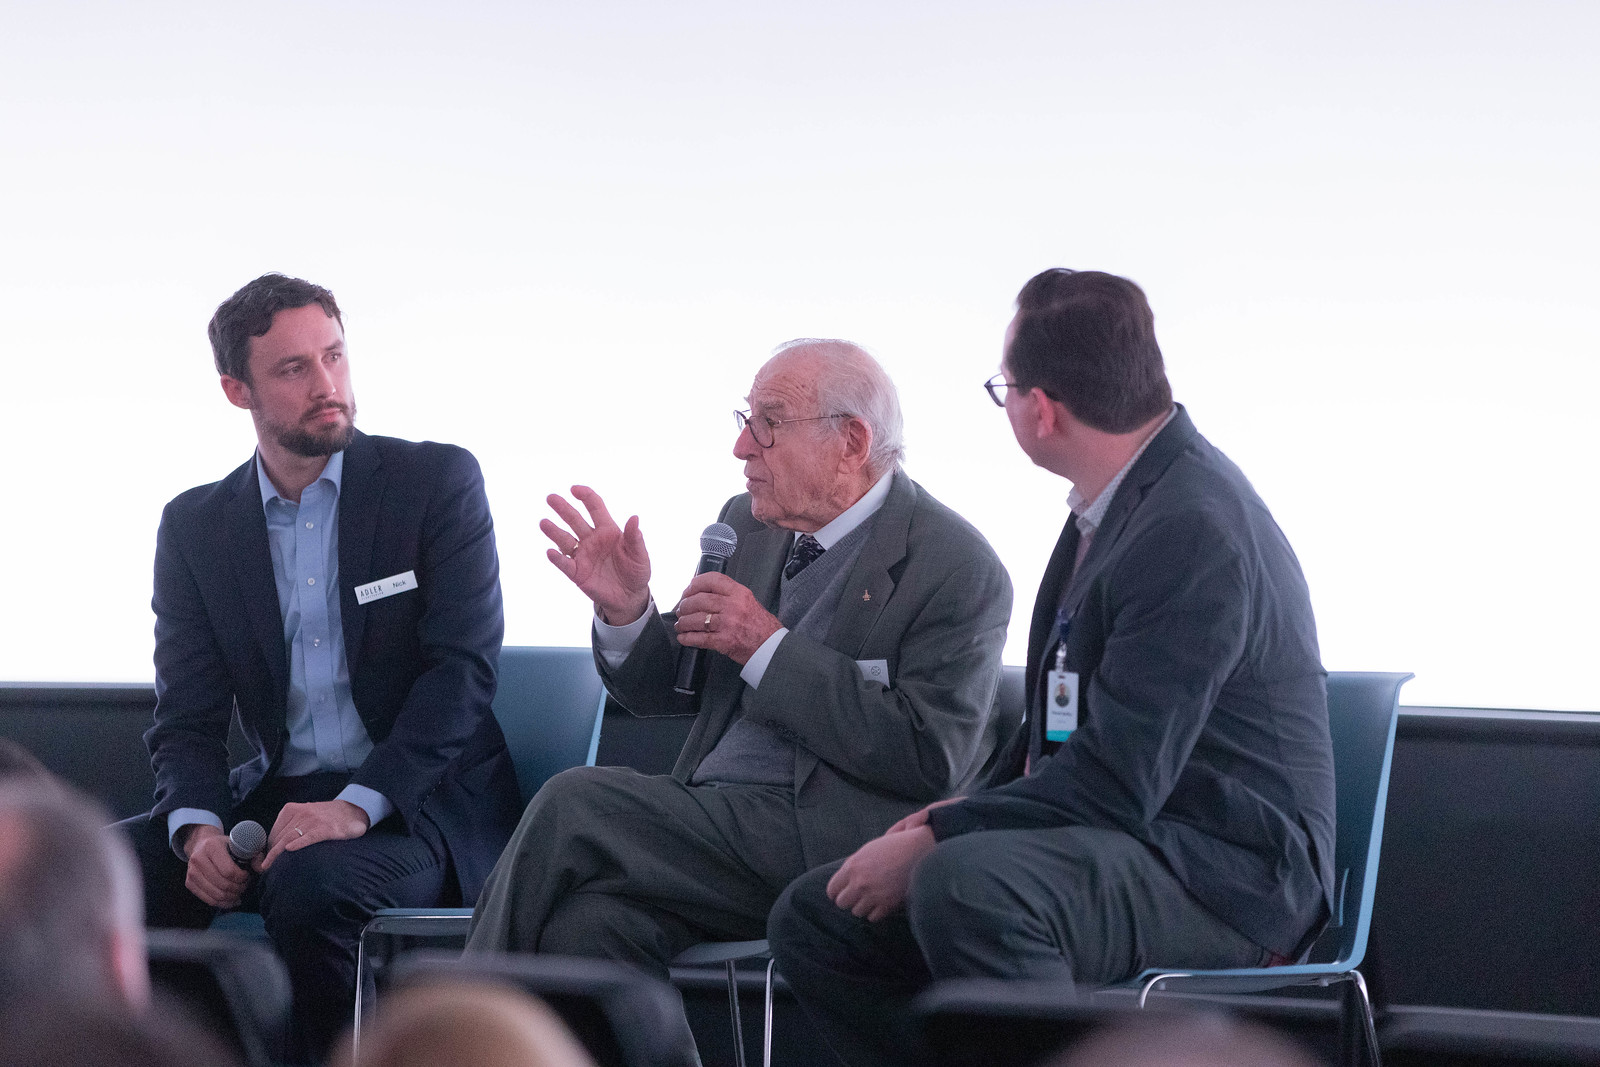 Nick (left) in conversation with Captain James A. Lovell, Jr. (center) for the Adler's Imagine the Moon opening preview.